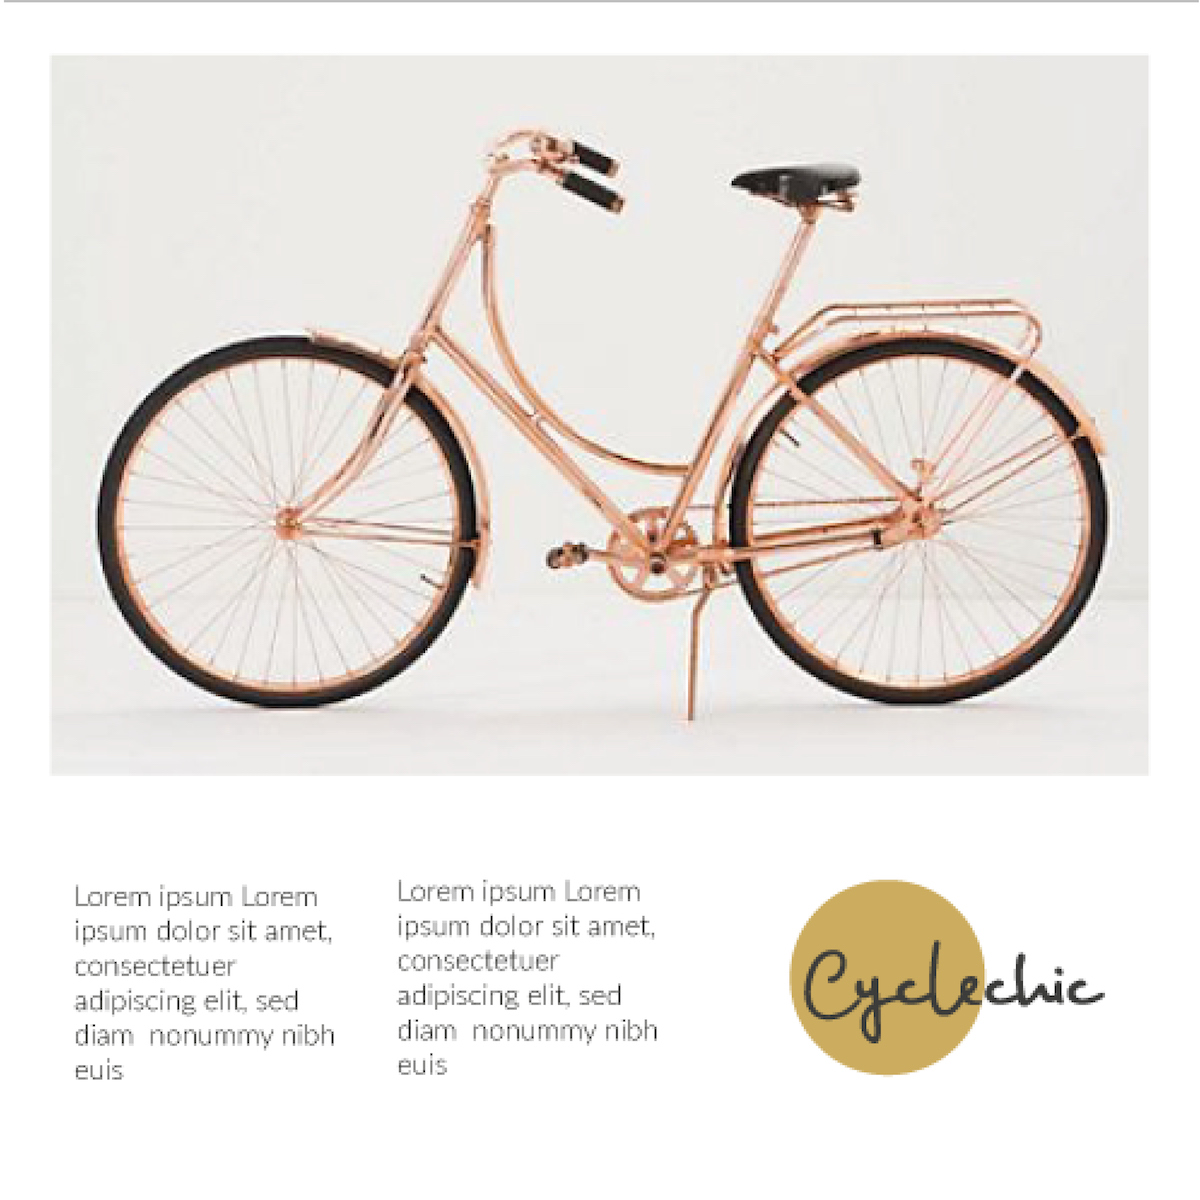 Cyclechic Insta squares_new9.jpg